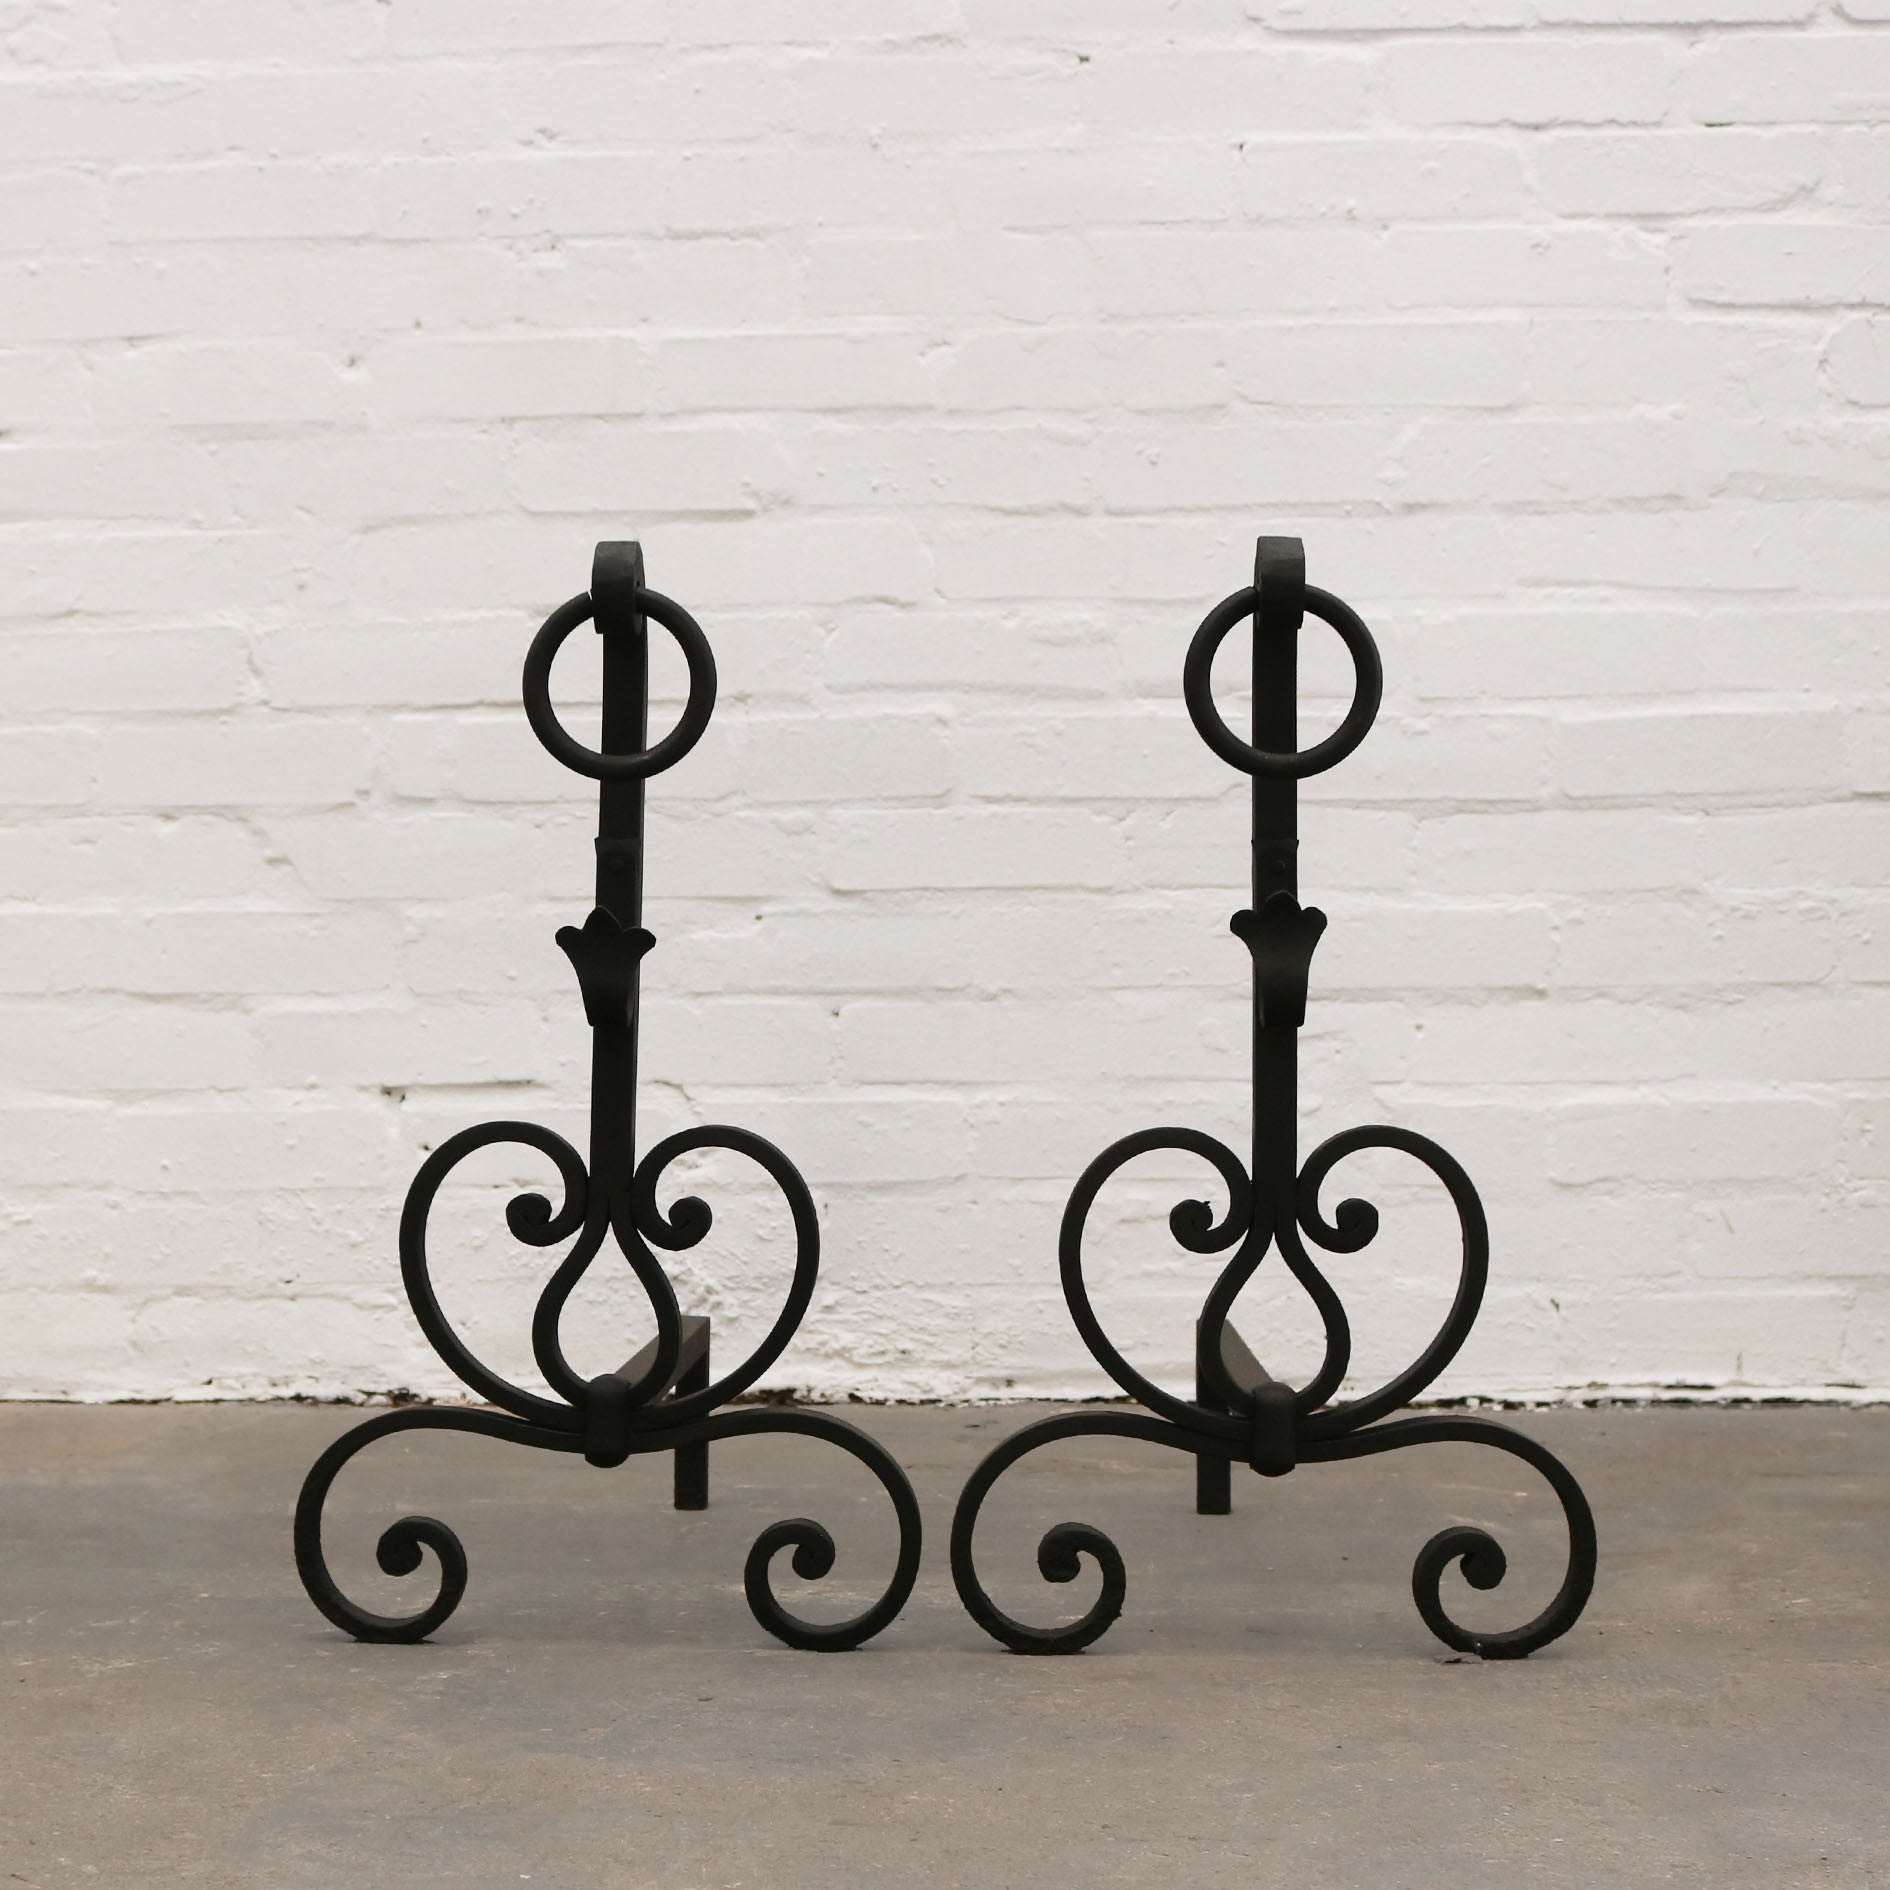 Antique Wrought Iron Firedogs - The Architectural Forum